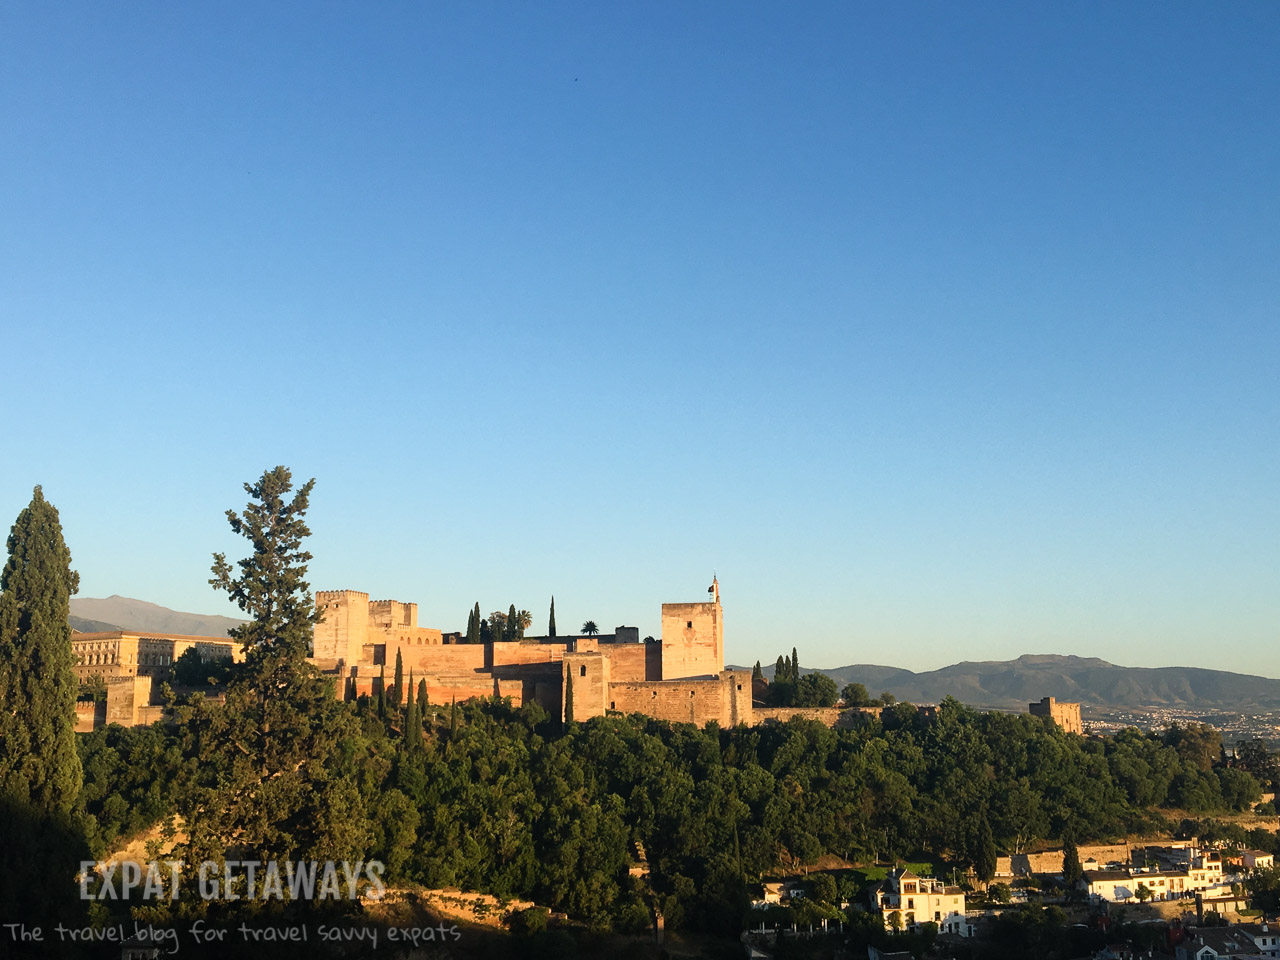 The Alhambra in Granada should be on every traveller's bucket list.